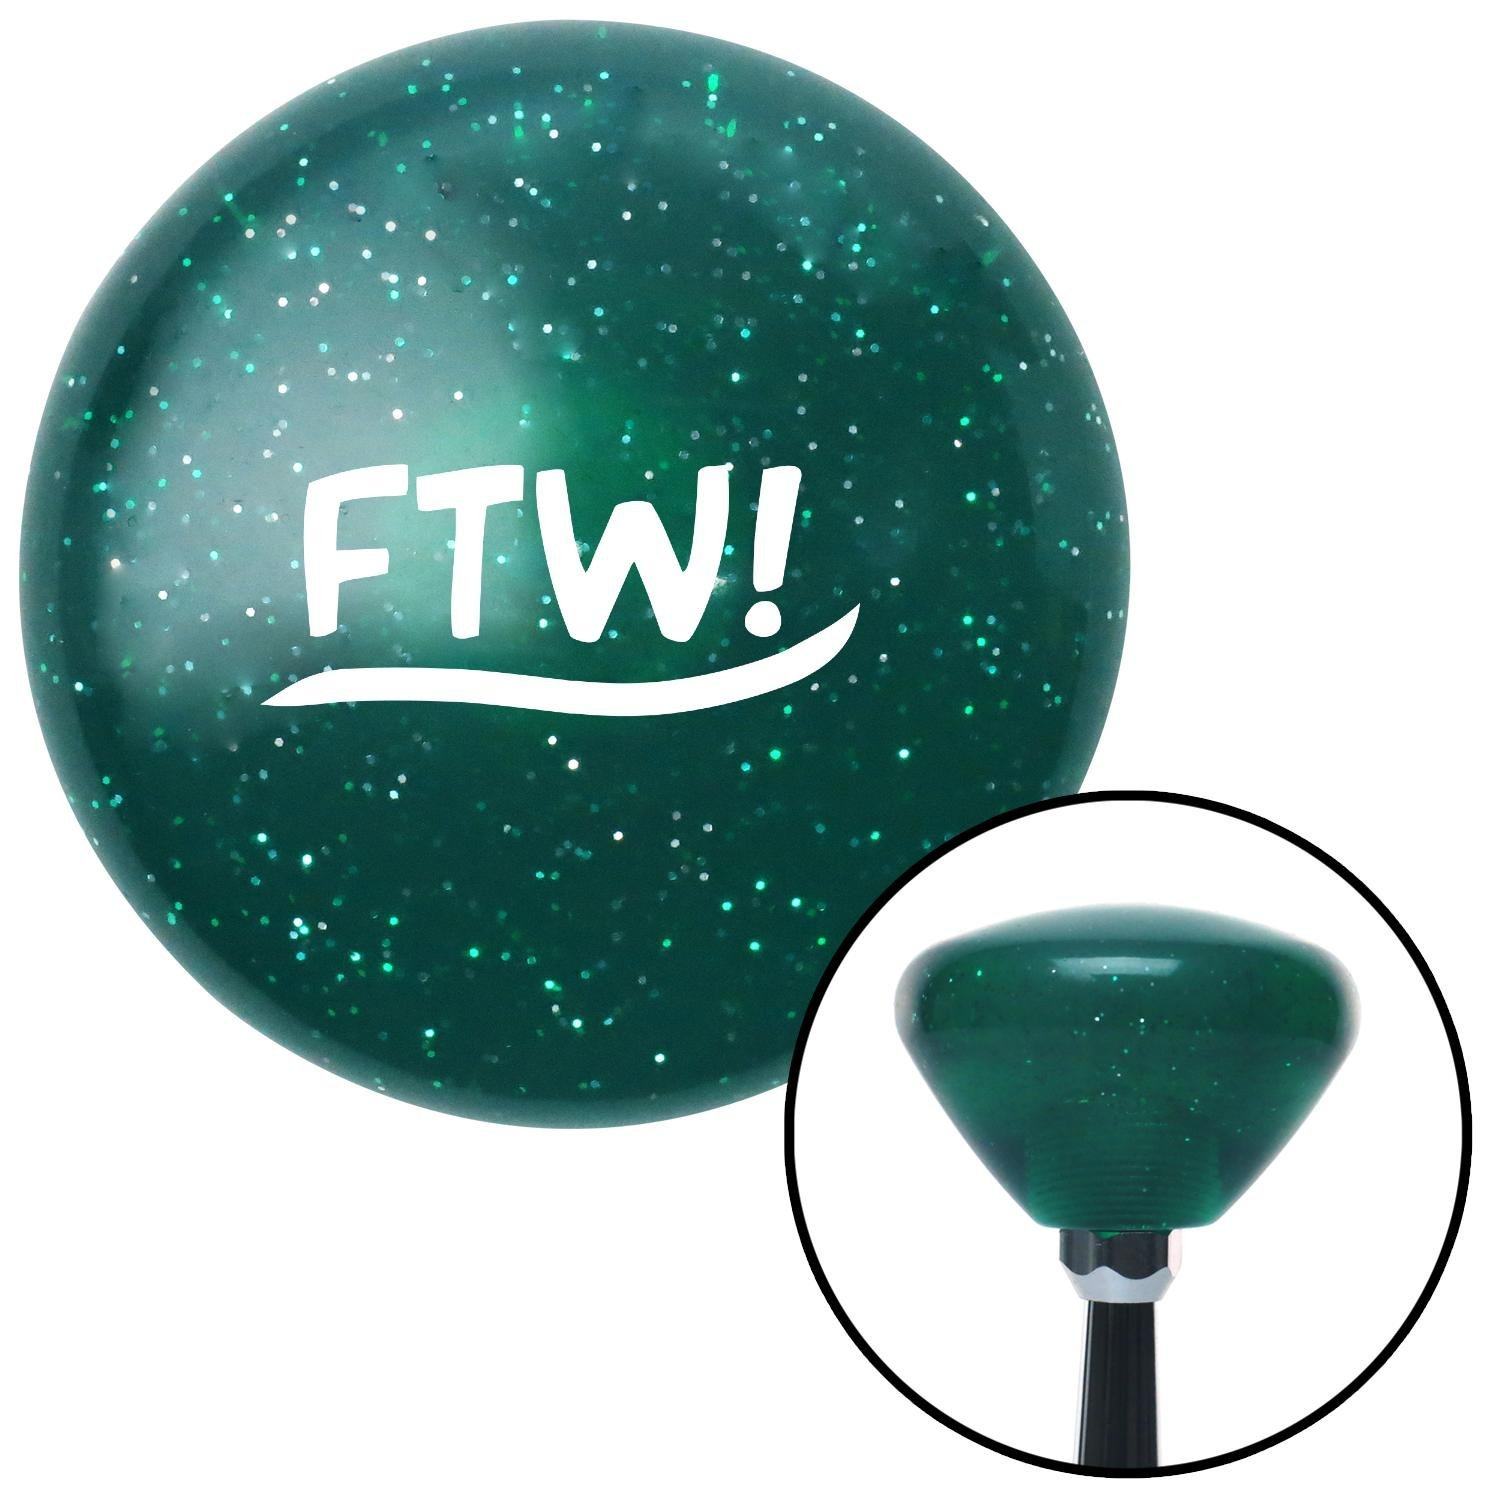 White FTW! American Shifter 205725 Green Retro Metal Flake Shift Knob with M16 x 1.5 Insert